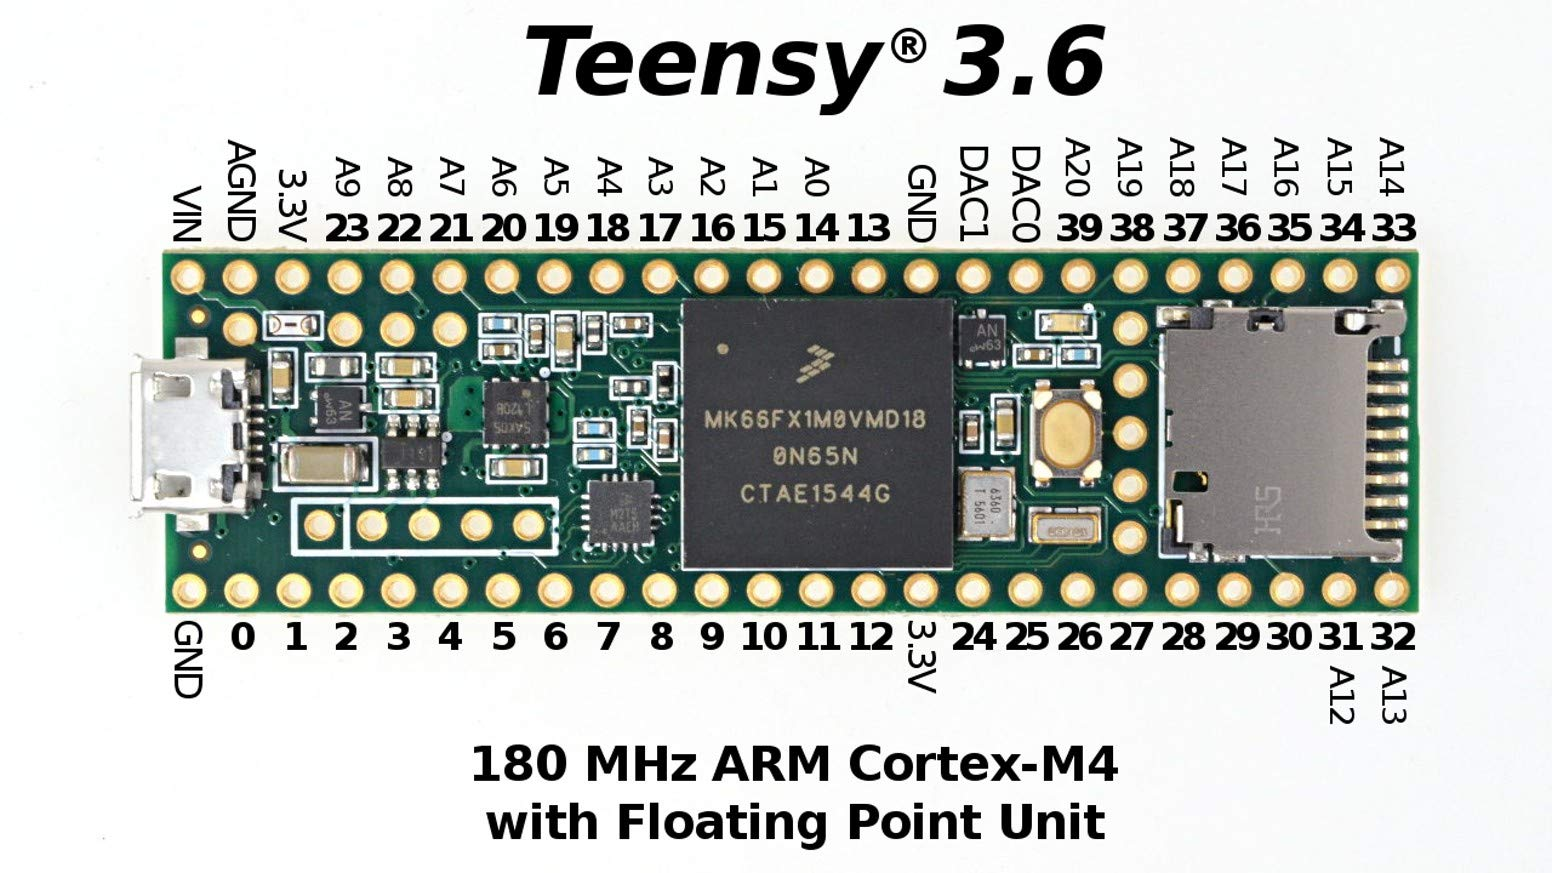 Teensy 3.6 Without Pins